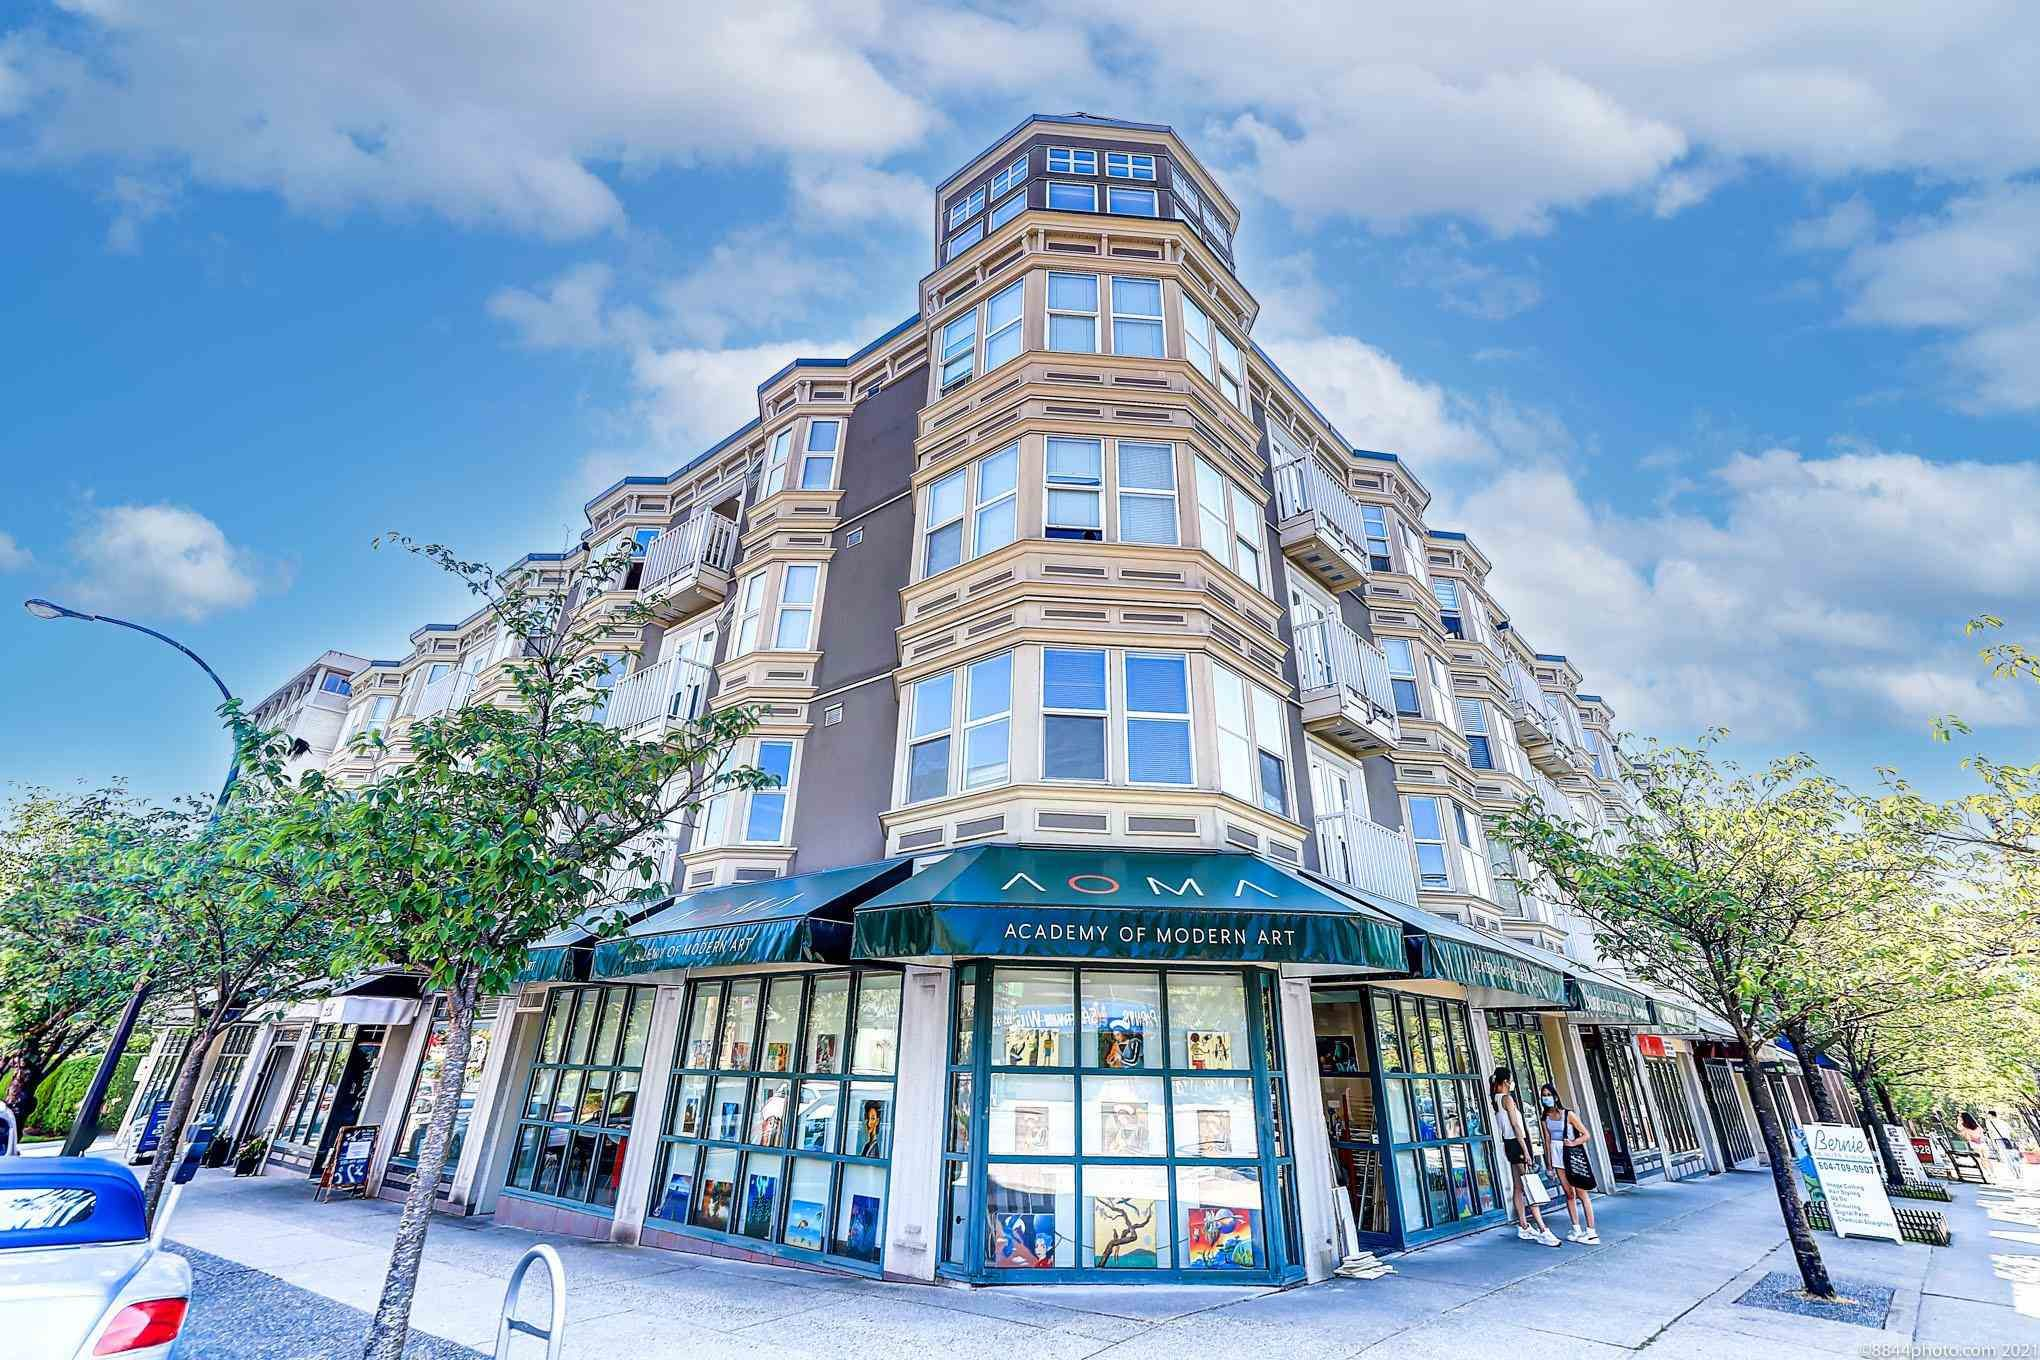 Main Photo: 204 5723 BALSAM Street in Vancouver: Kerrisdale Condo for sale (Vancouver West)  : MLS®# R2597878